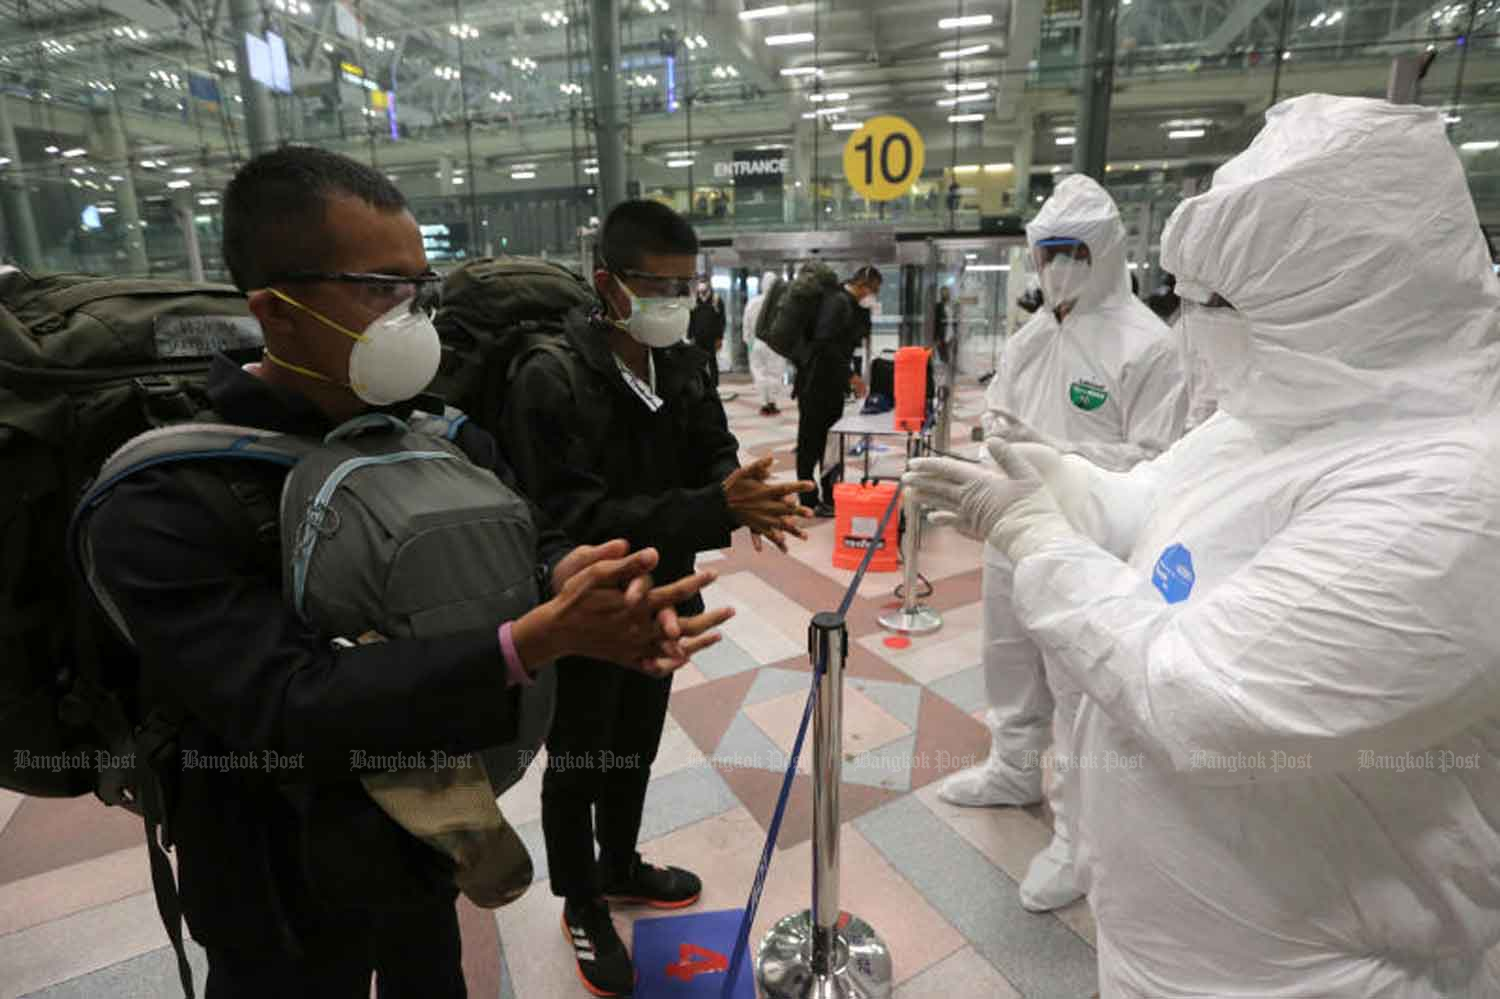 Health officials show soldiers returning from a military exercise in Hawaii how to sanitise their hands at Suvarnabhumi airport in Samut Prakan province on Thursday, when the government confirmed eight new Covid-19 cases among already quarantined returnees. (Photo: Wichan Charoenkiatpakul)